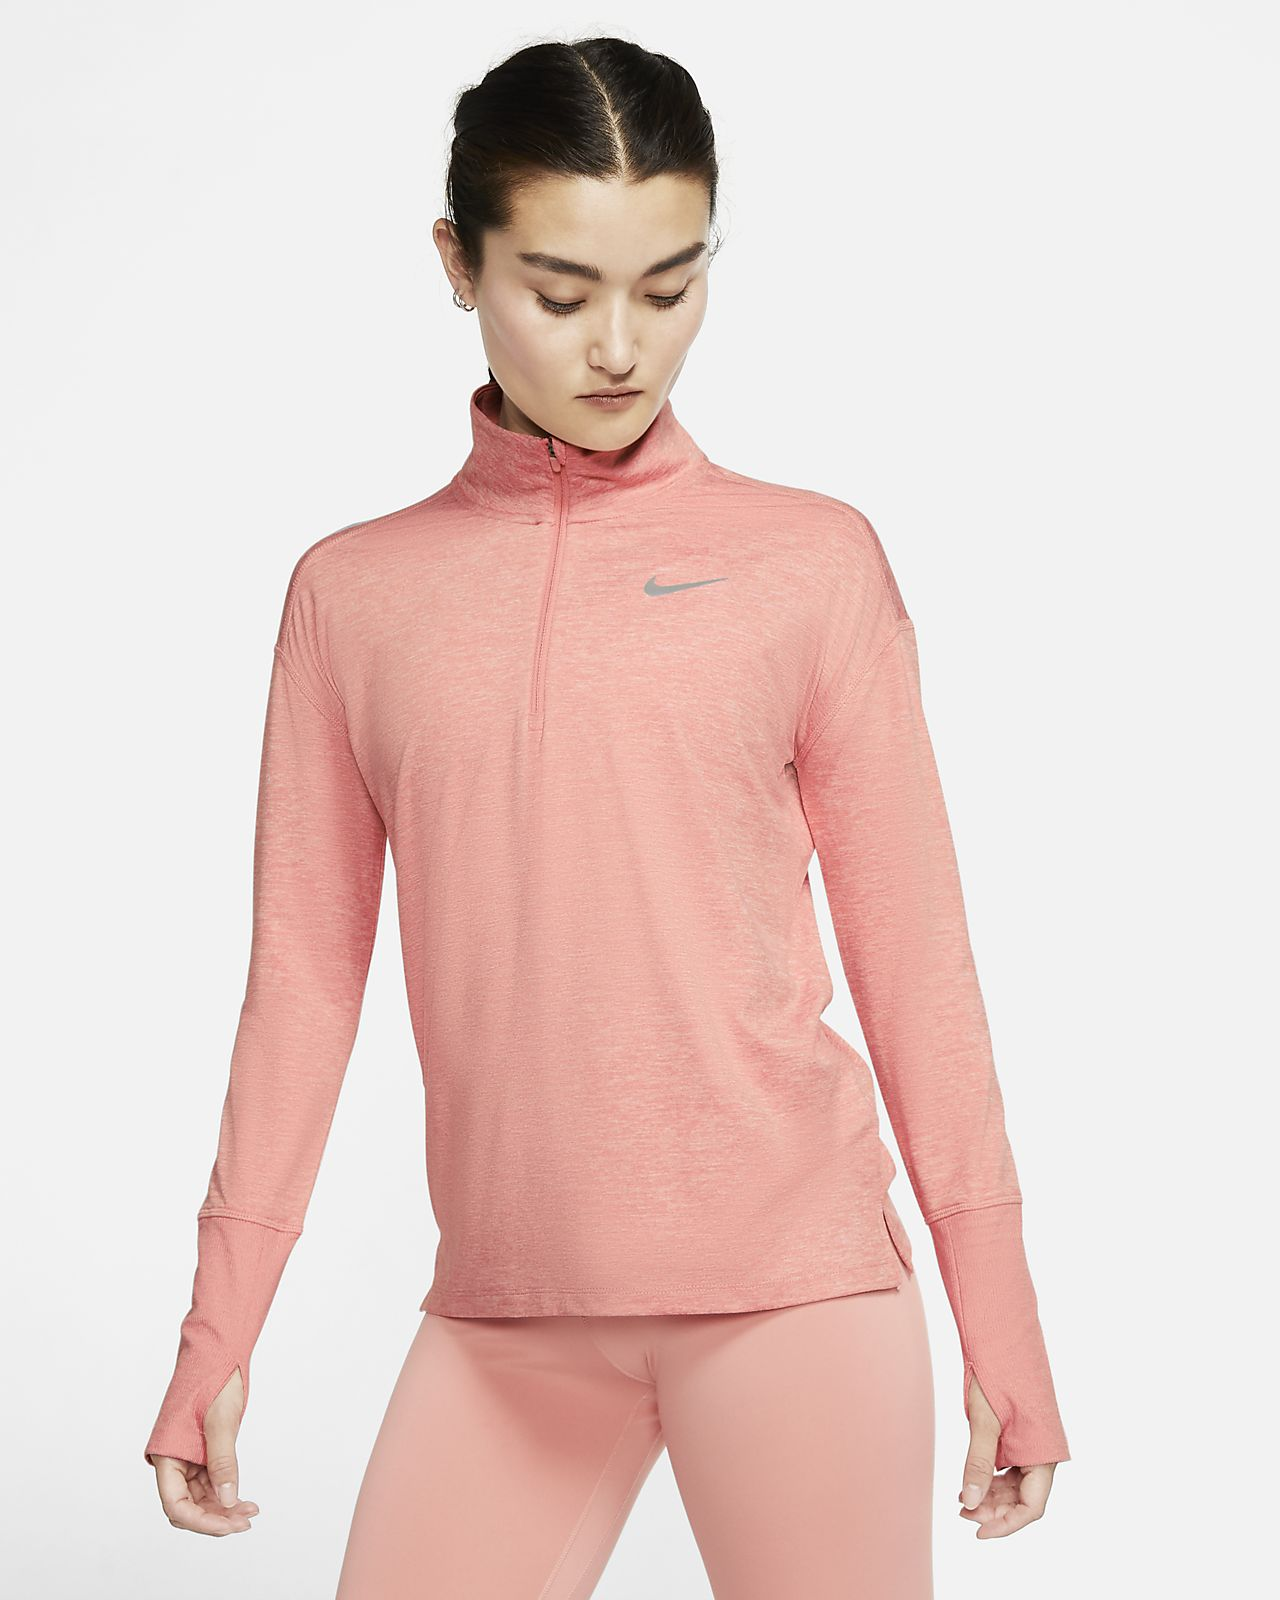 f13e11f2 Nike Element Women's Half-Zip Running Top